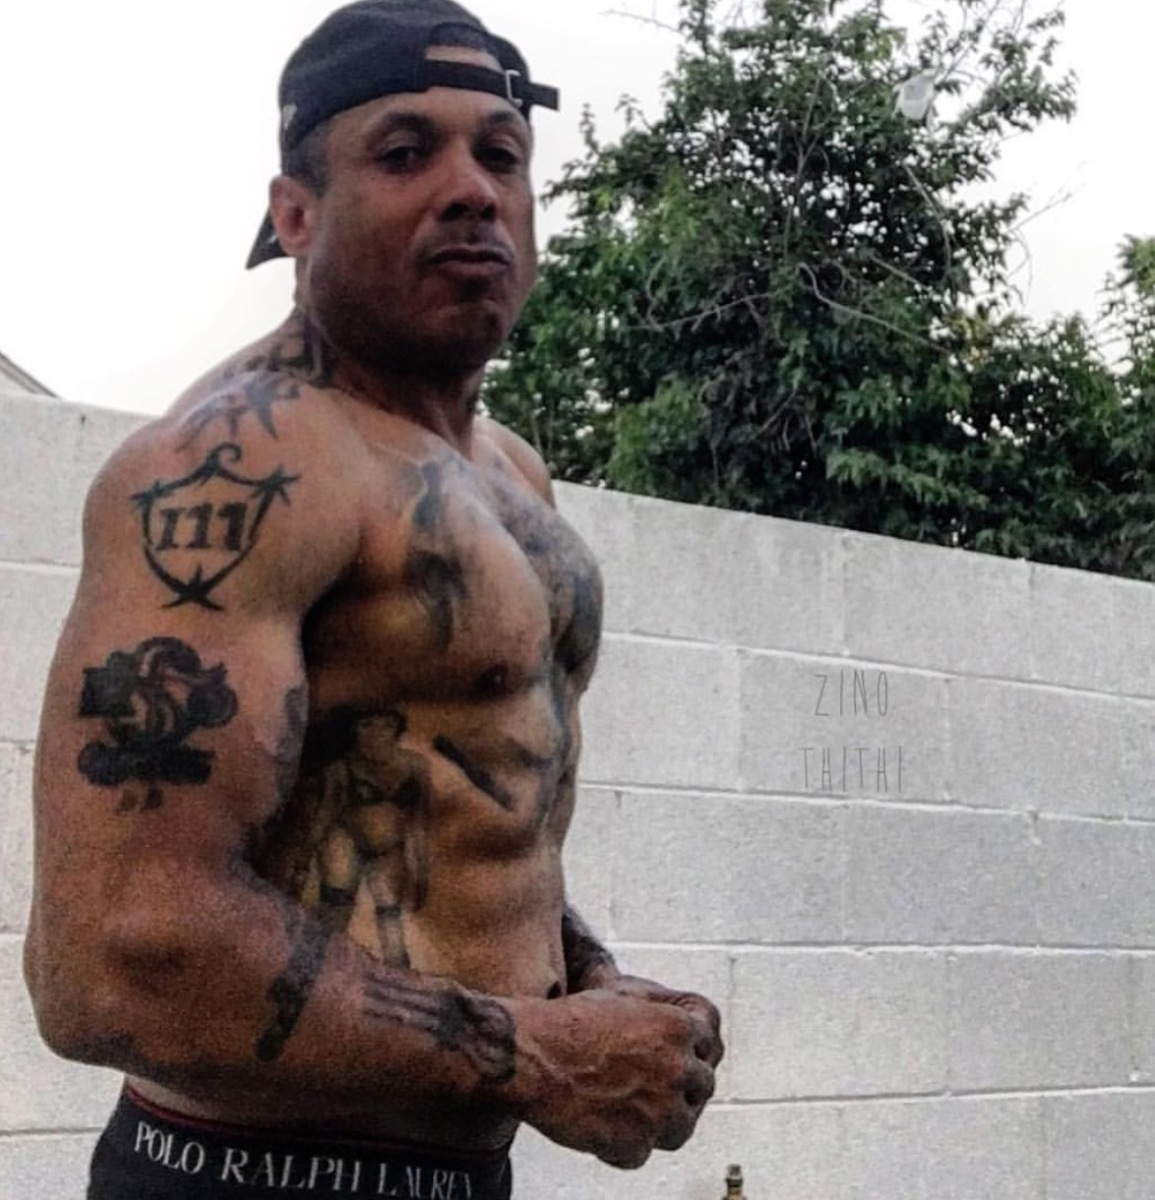 Benzino Looks Like All That Time In The Gym Has Paid Off